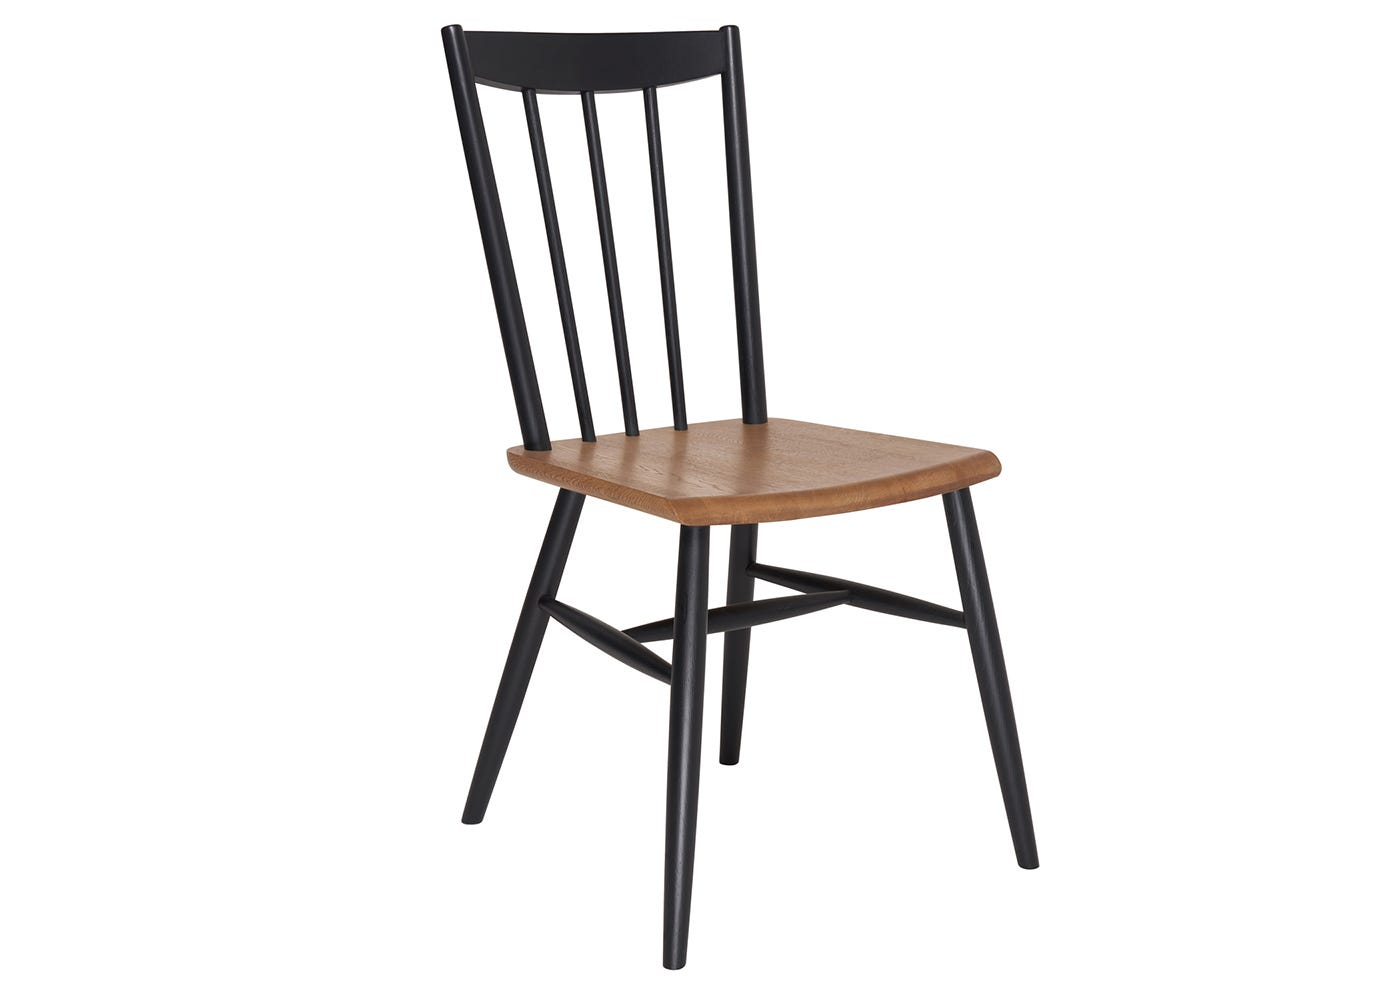 Monza Dining Chair - Angle View